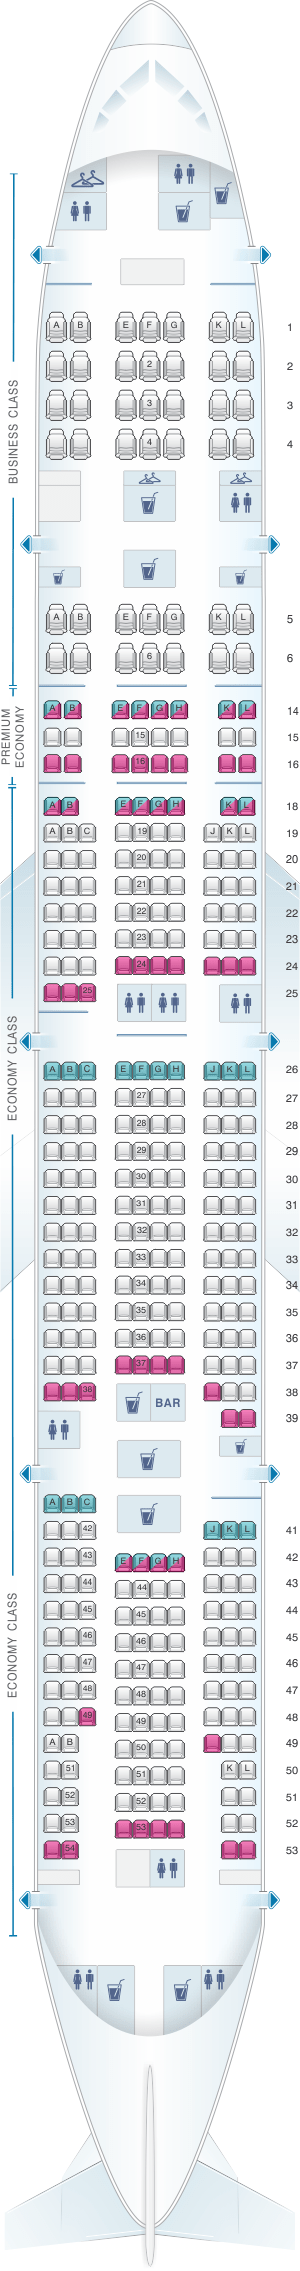 Seating plan boeing 777 300er air france for Plan de cabine boeing 777 200 air france